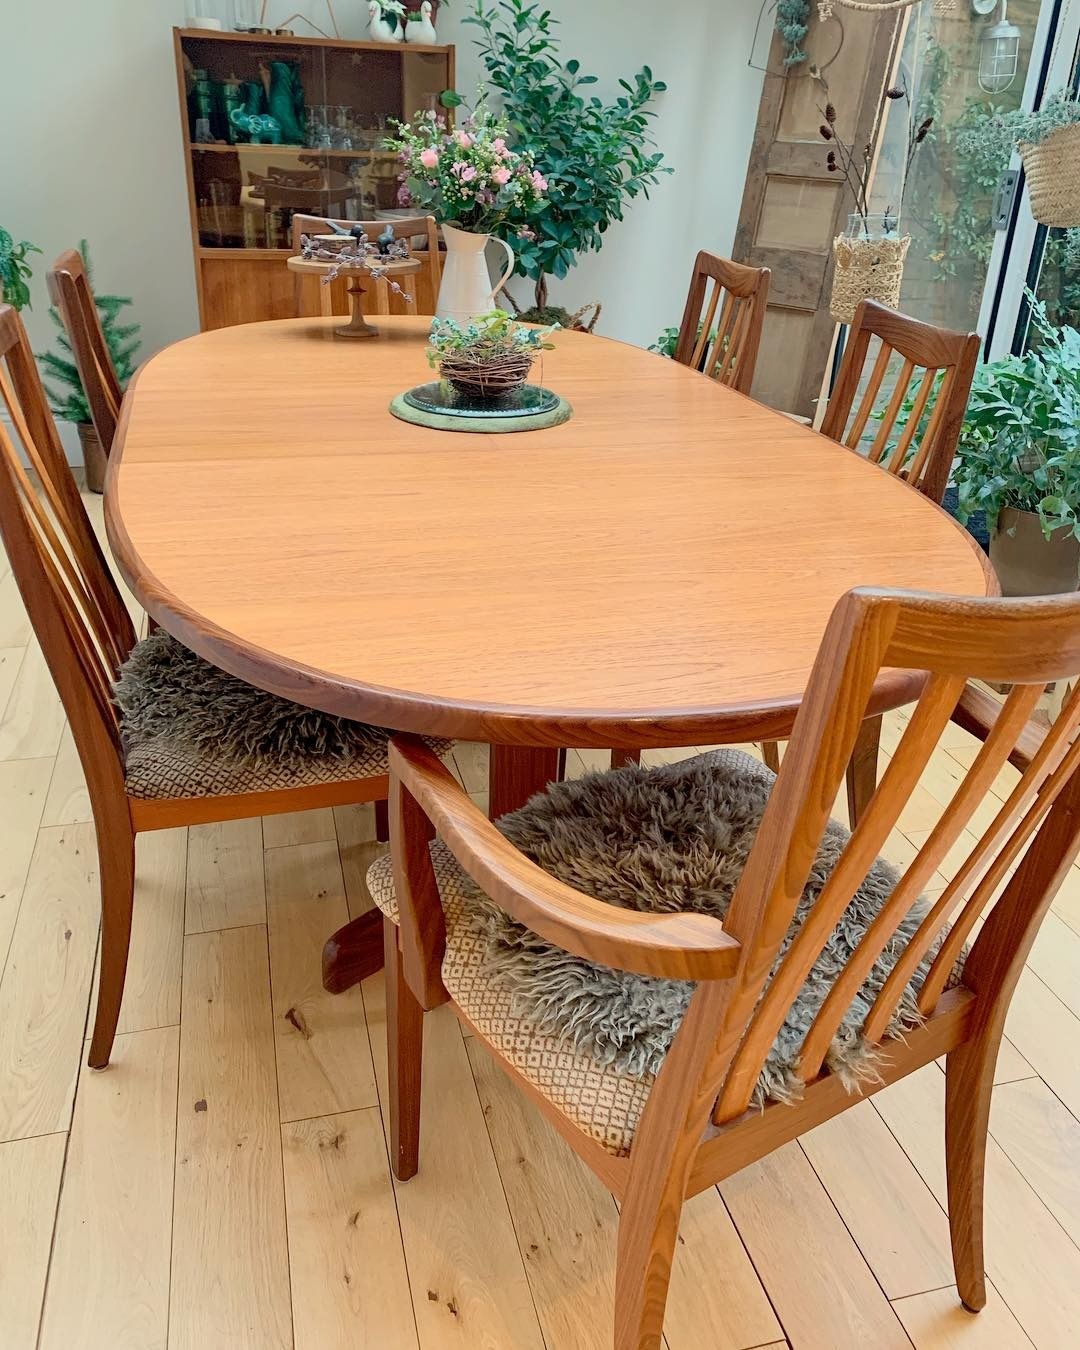 Vintage G Plan Dining Table And Chairs Baudina Coulomb Instagram